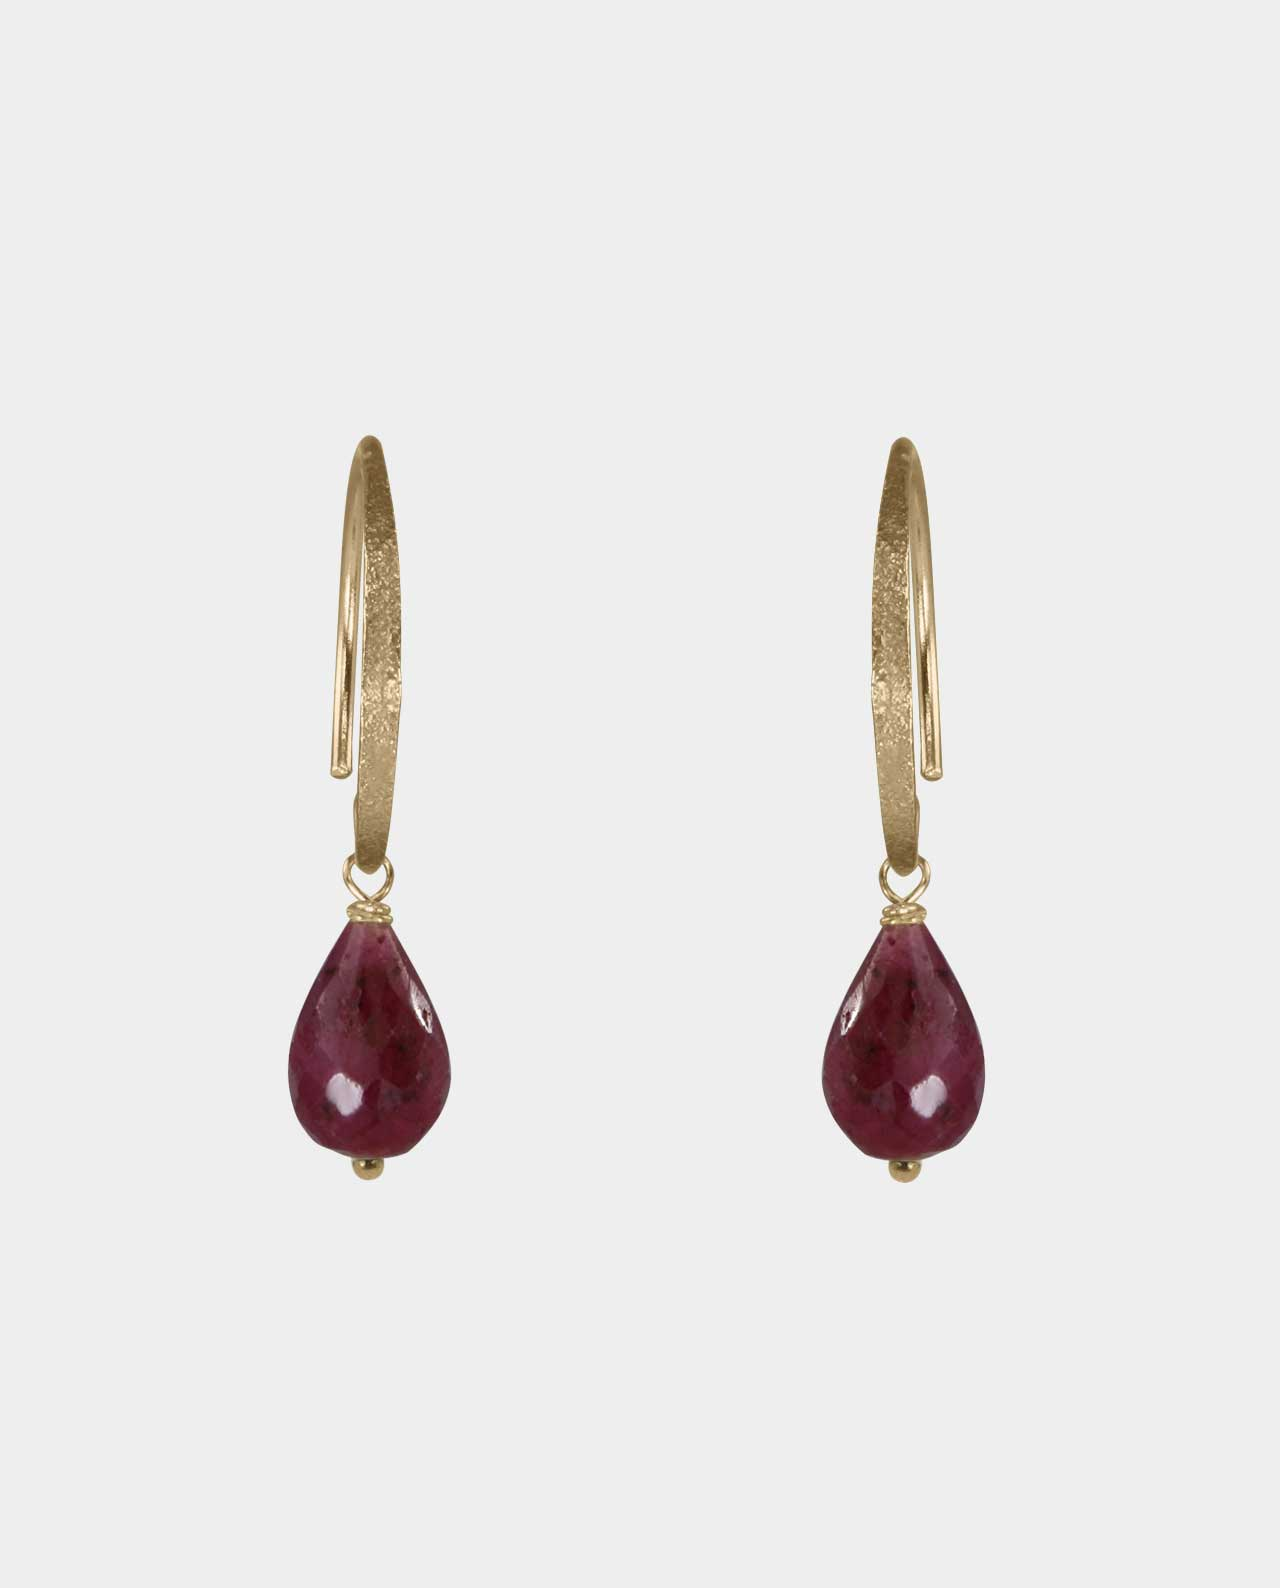 The complete earrings with bevelled burgundy ruby droplets that do not compromise the classic look with its organic and geometric sharpness and therefore every woman's great desire